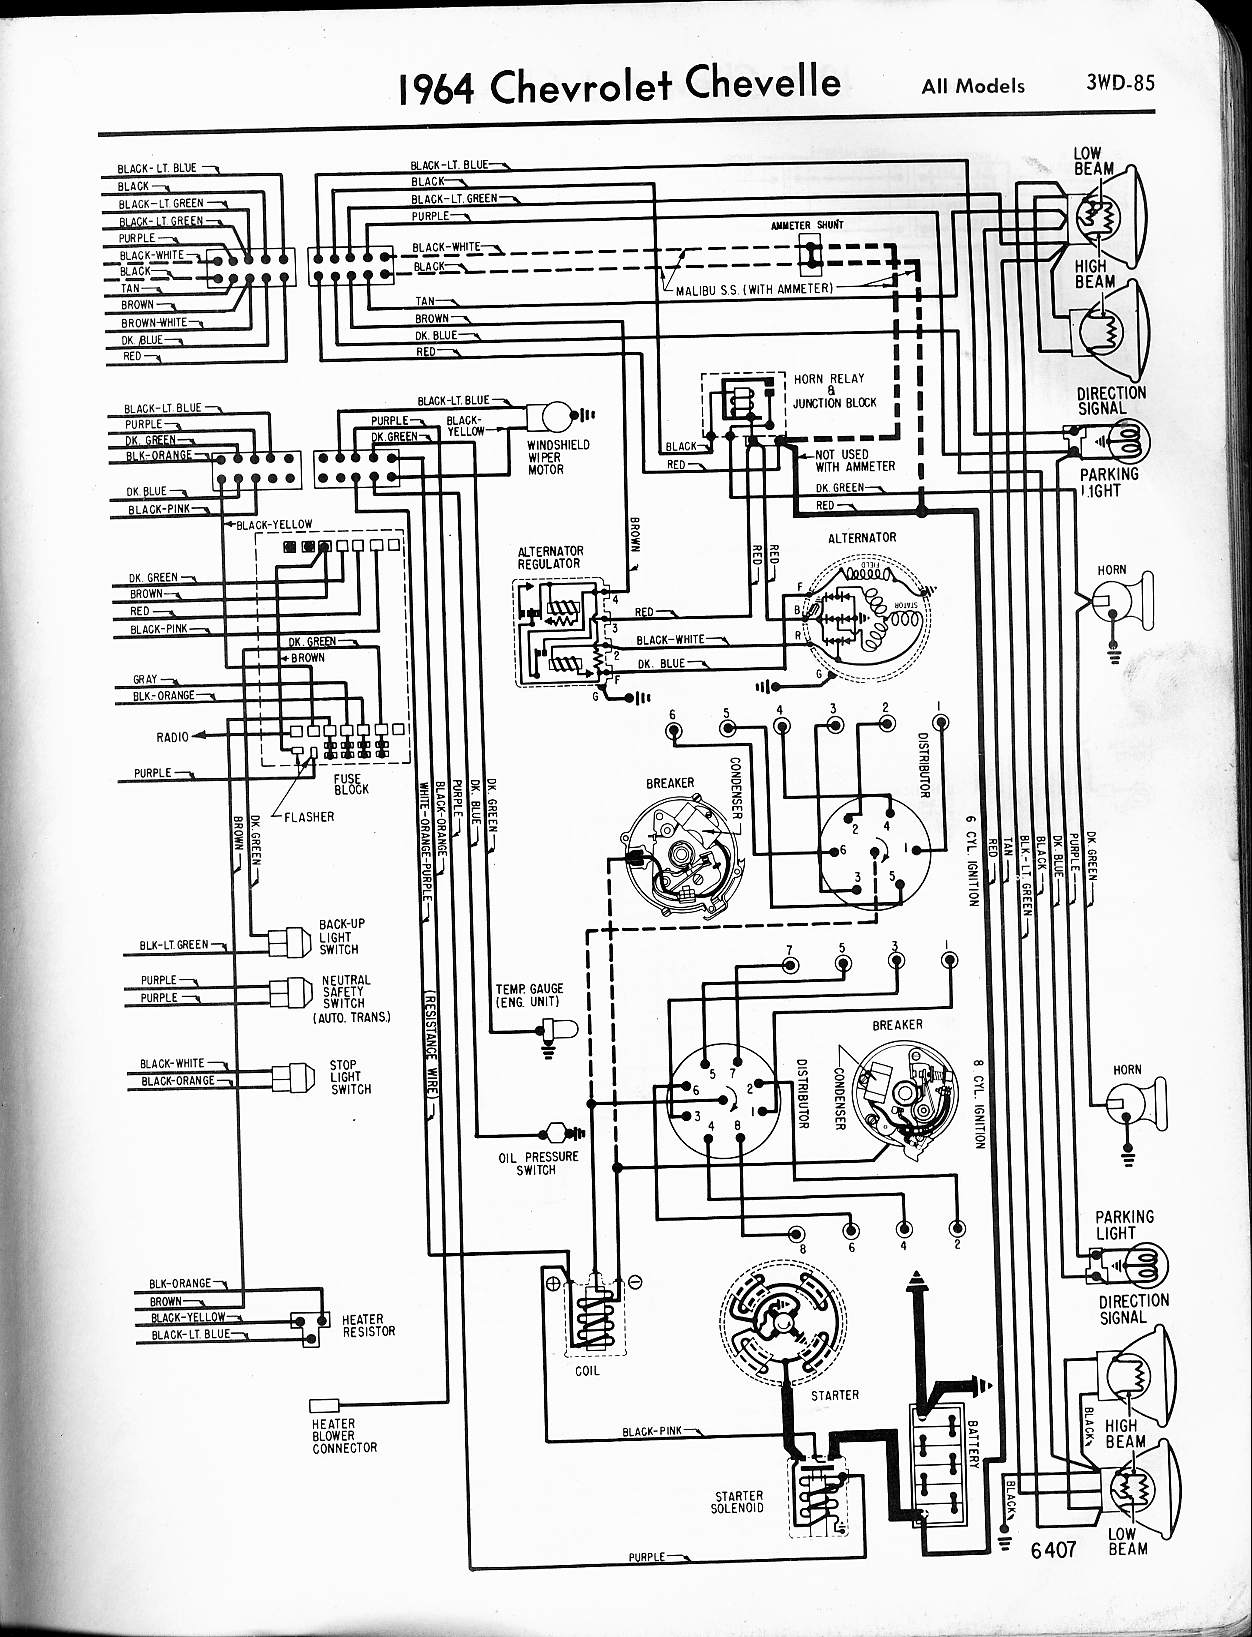 Miraculous Wiring Harness 1964 El Camino Basic Electronics Wiring Diagram Ranpur Mohammedshrine Wiring Digital Resources Ranpurmohammedshrineorg